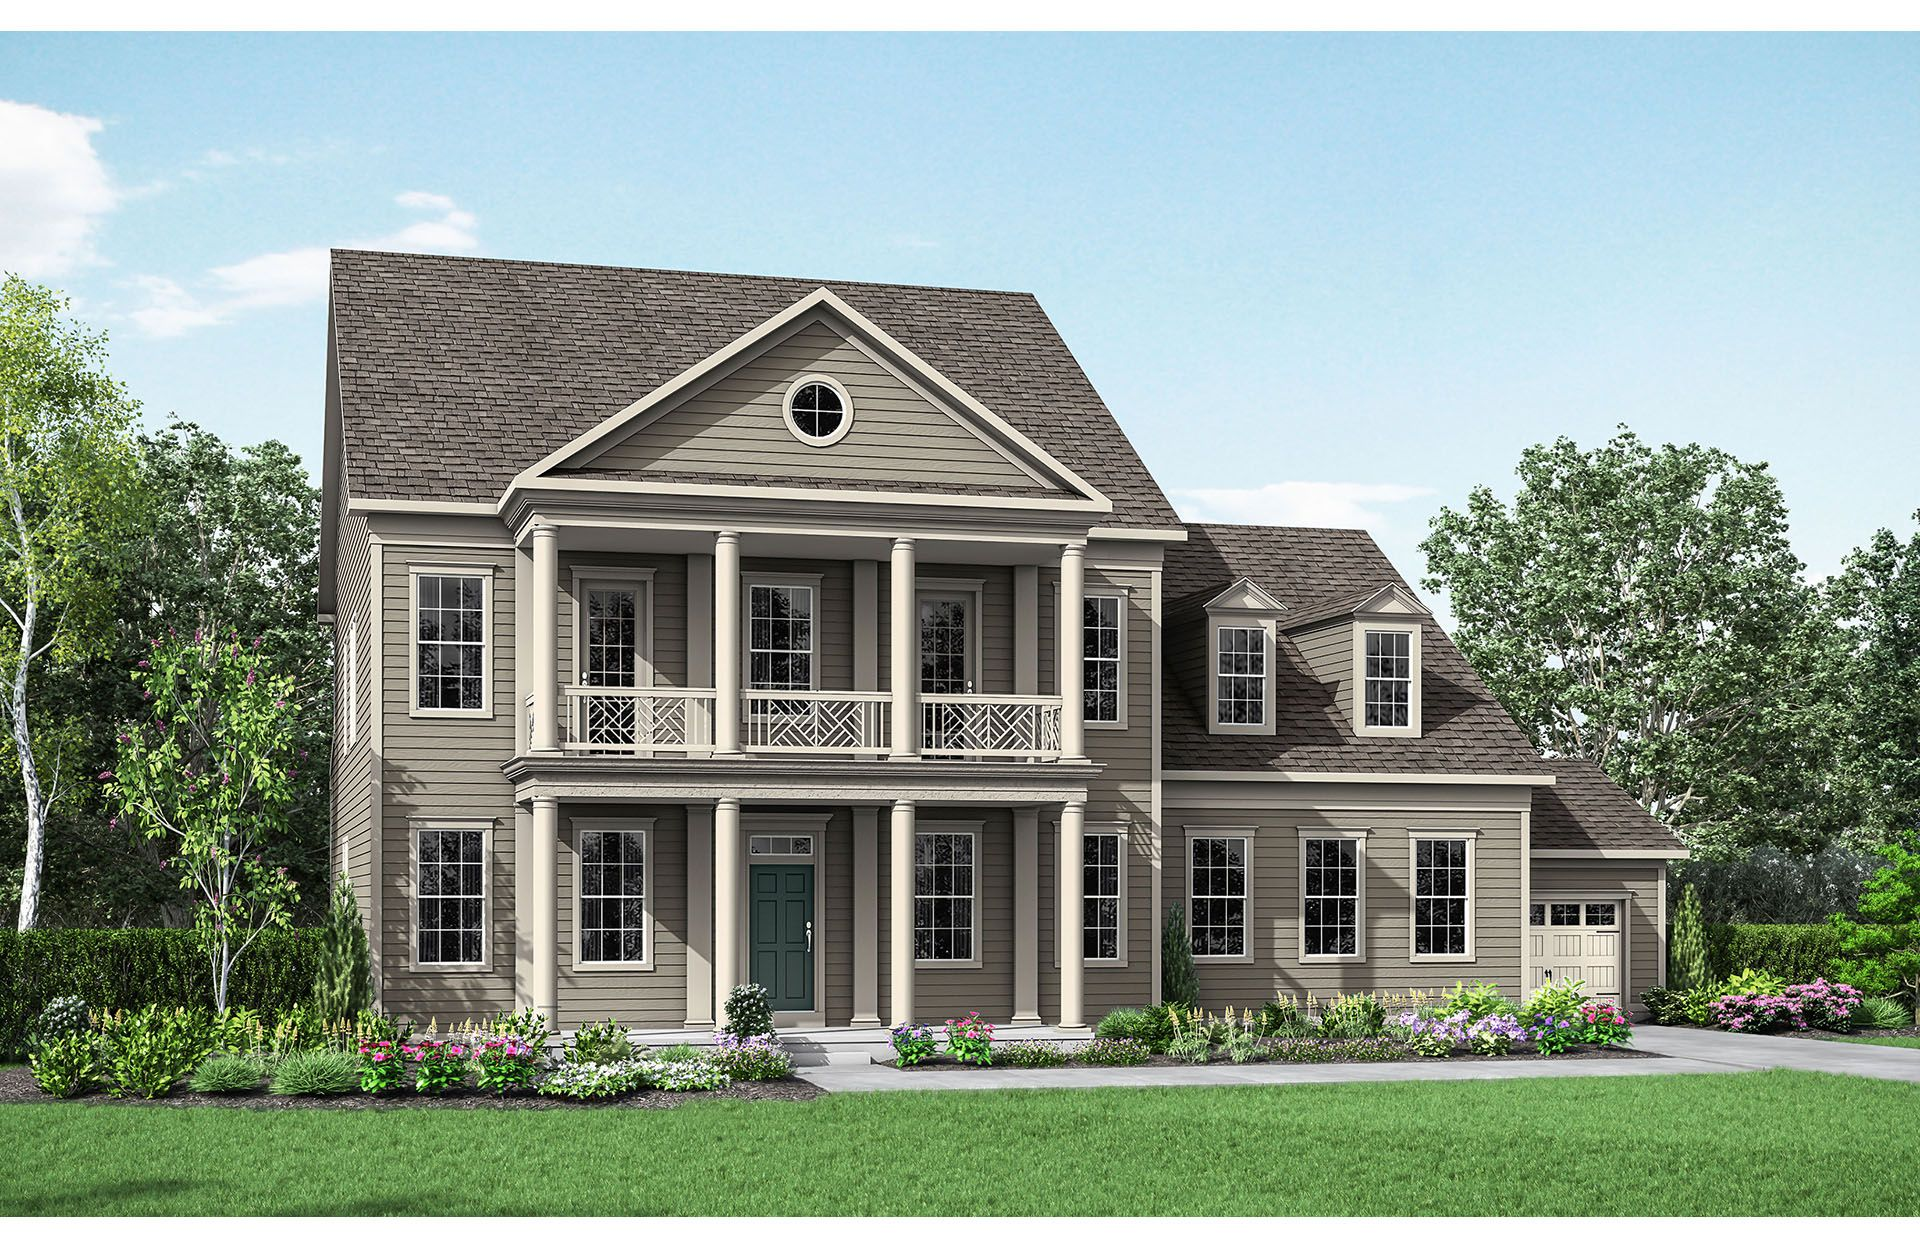 Single Family for Active at Willowsford - Oakton 40970 Sweet Thorn Lane Aldie, Virginia 20105 United States